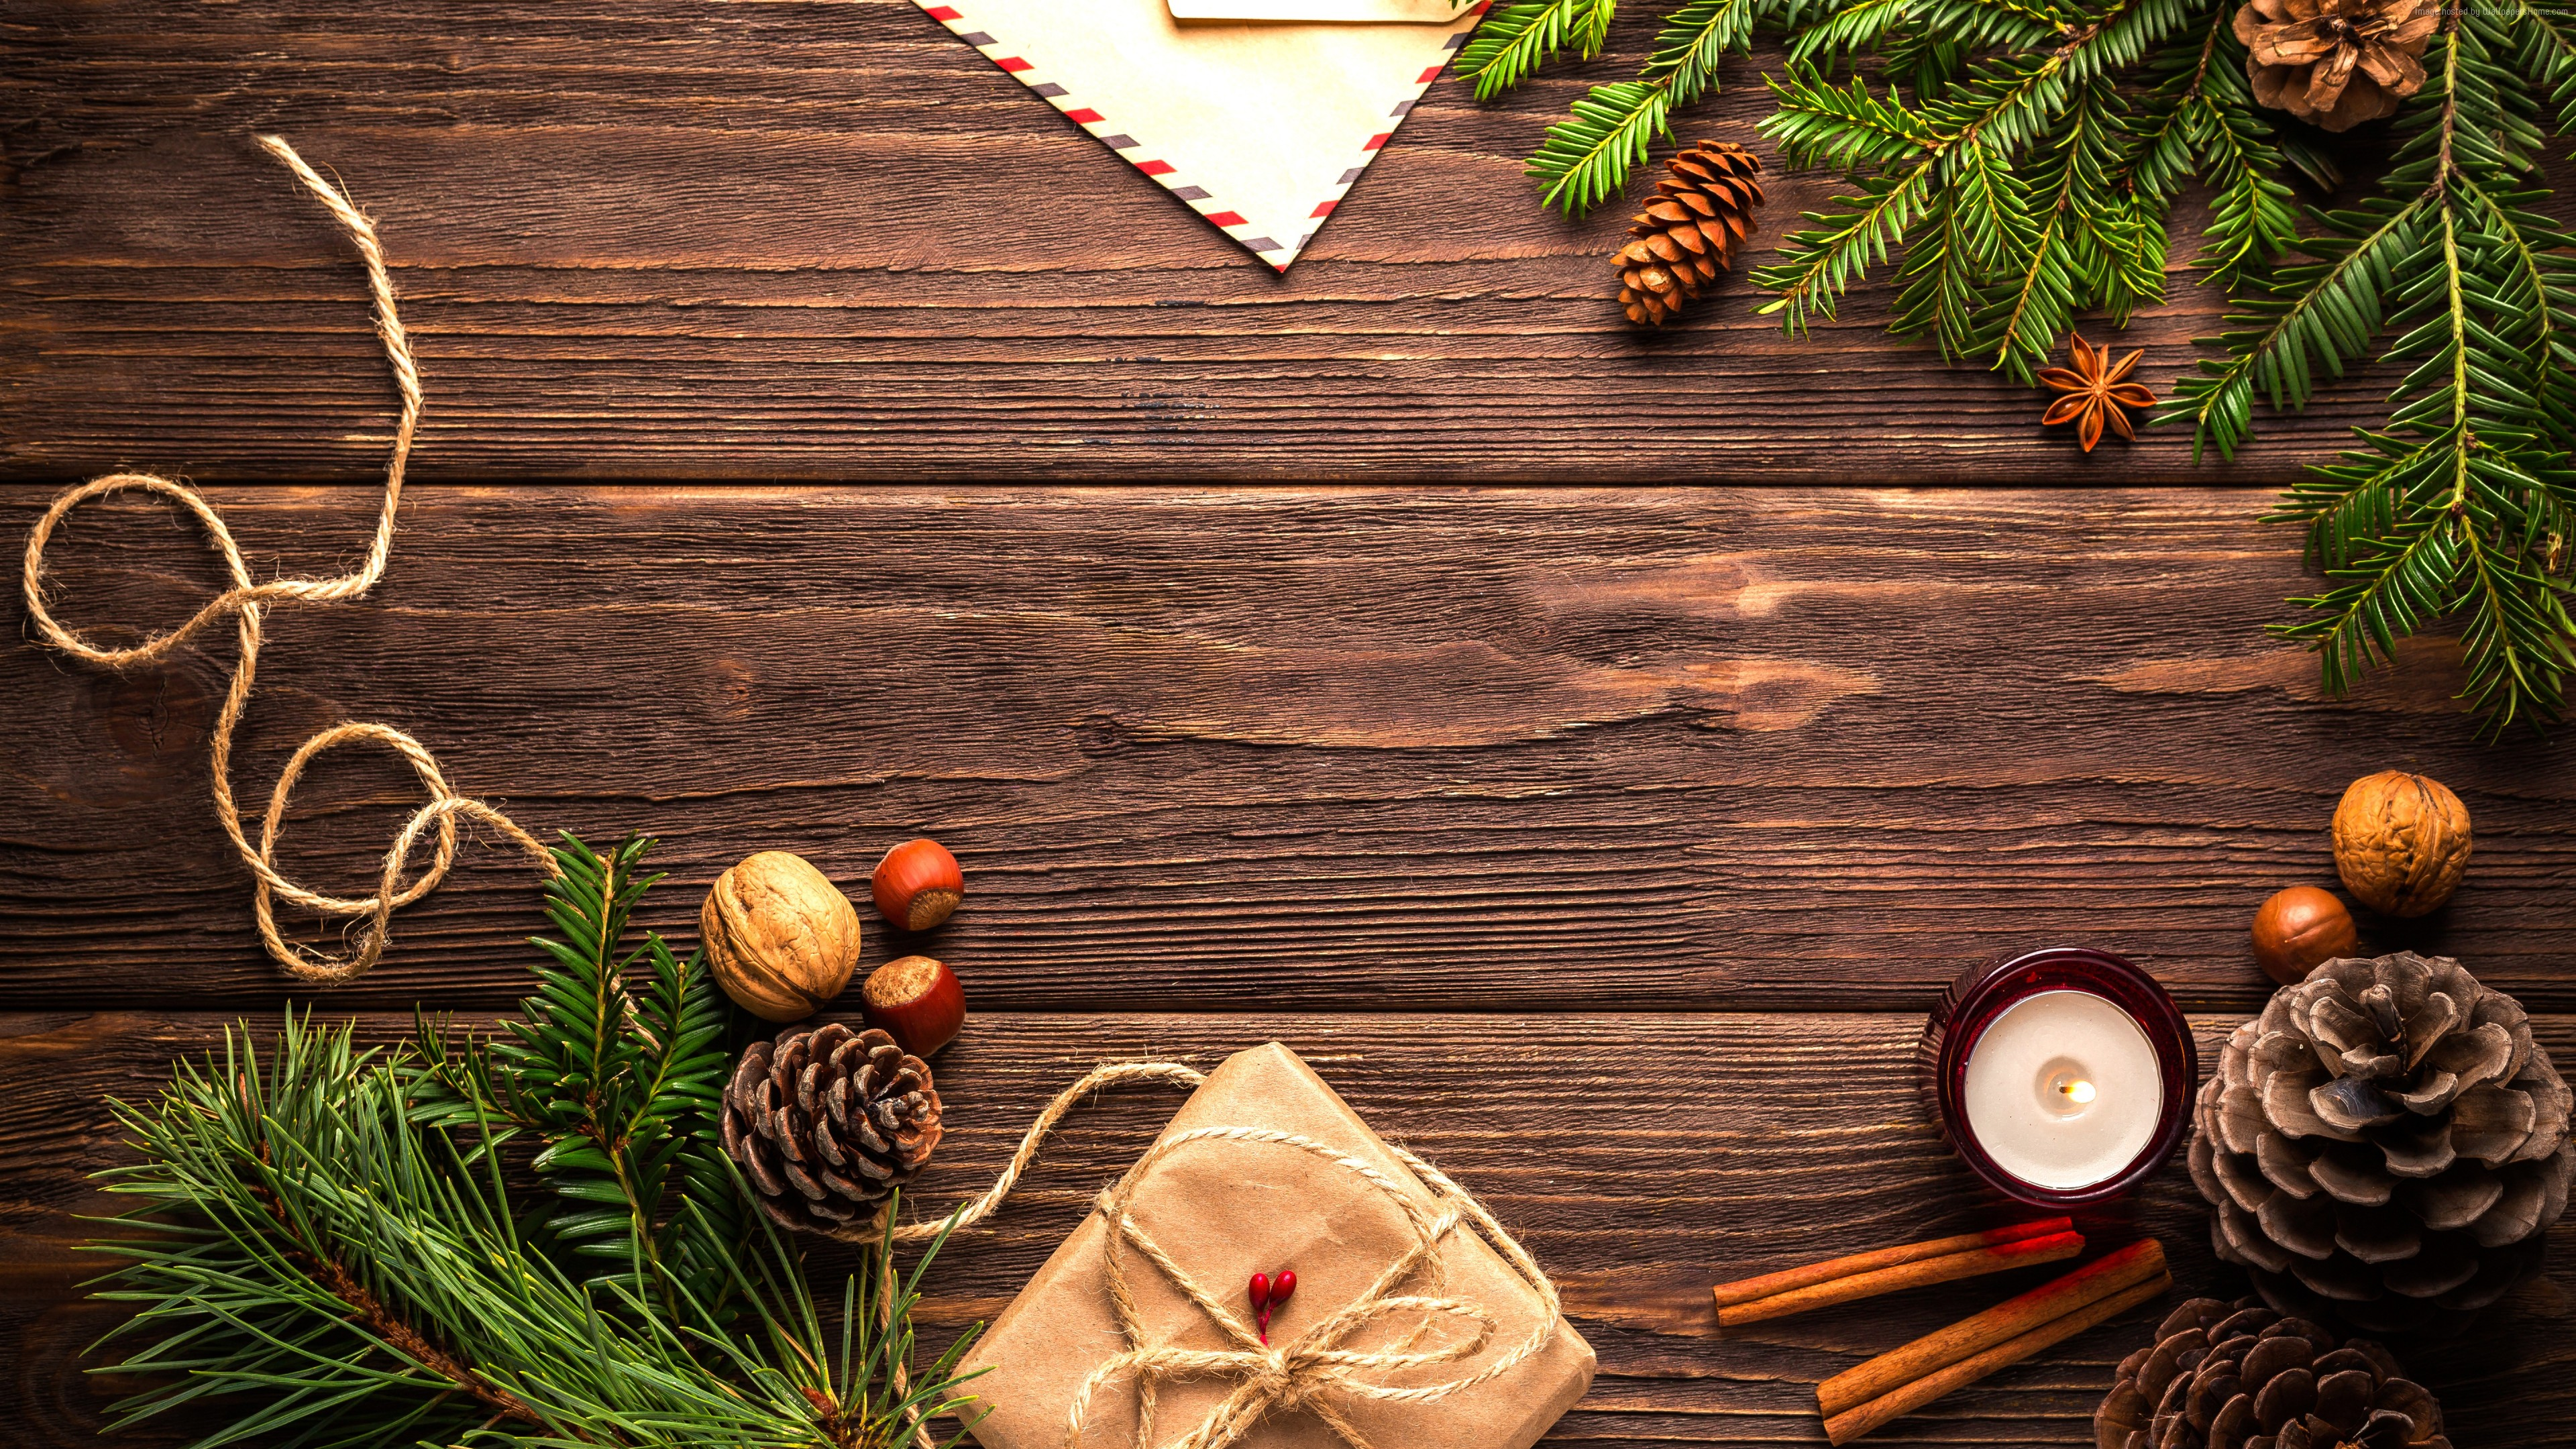 Wallpaper Christmas, New Year, table, fir-tree, 5k, Holidays